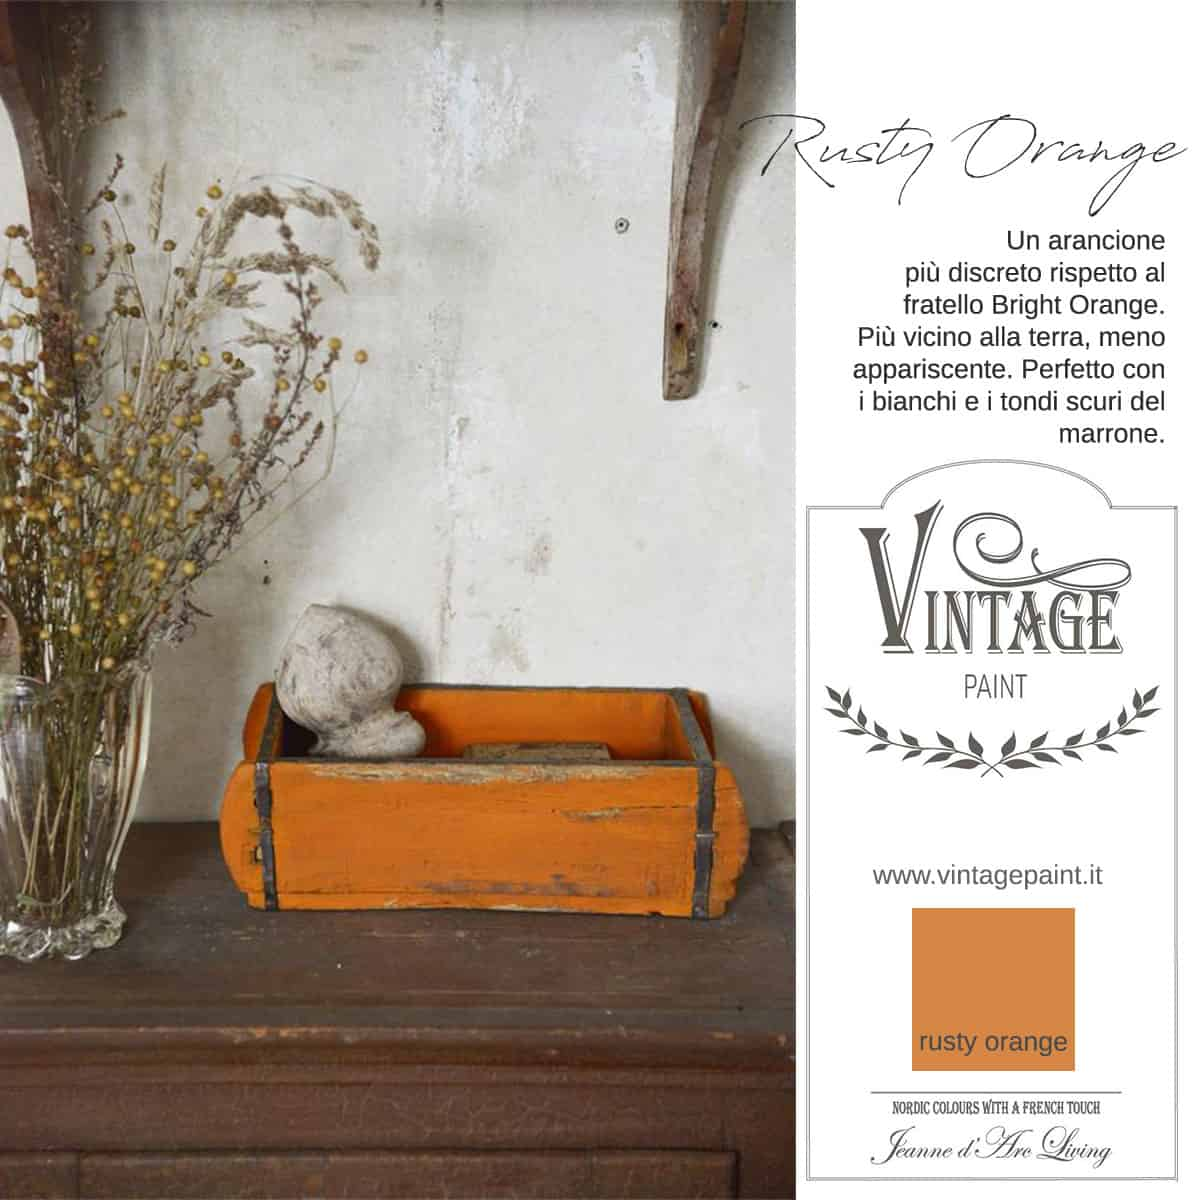 rusty orange arancione vintage chalk paint vernici shabby chic autentico look gesso